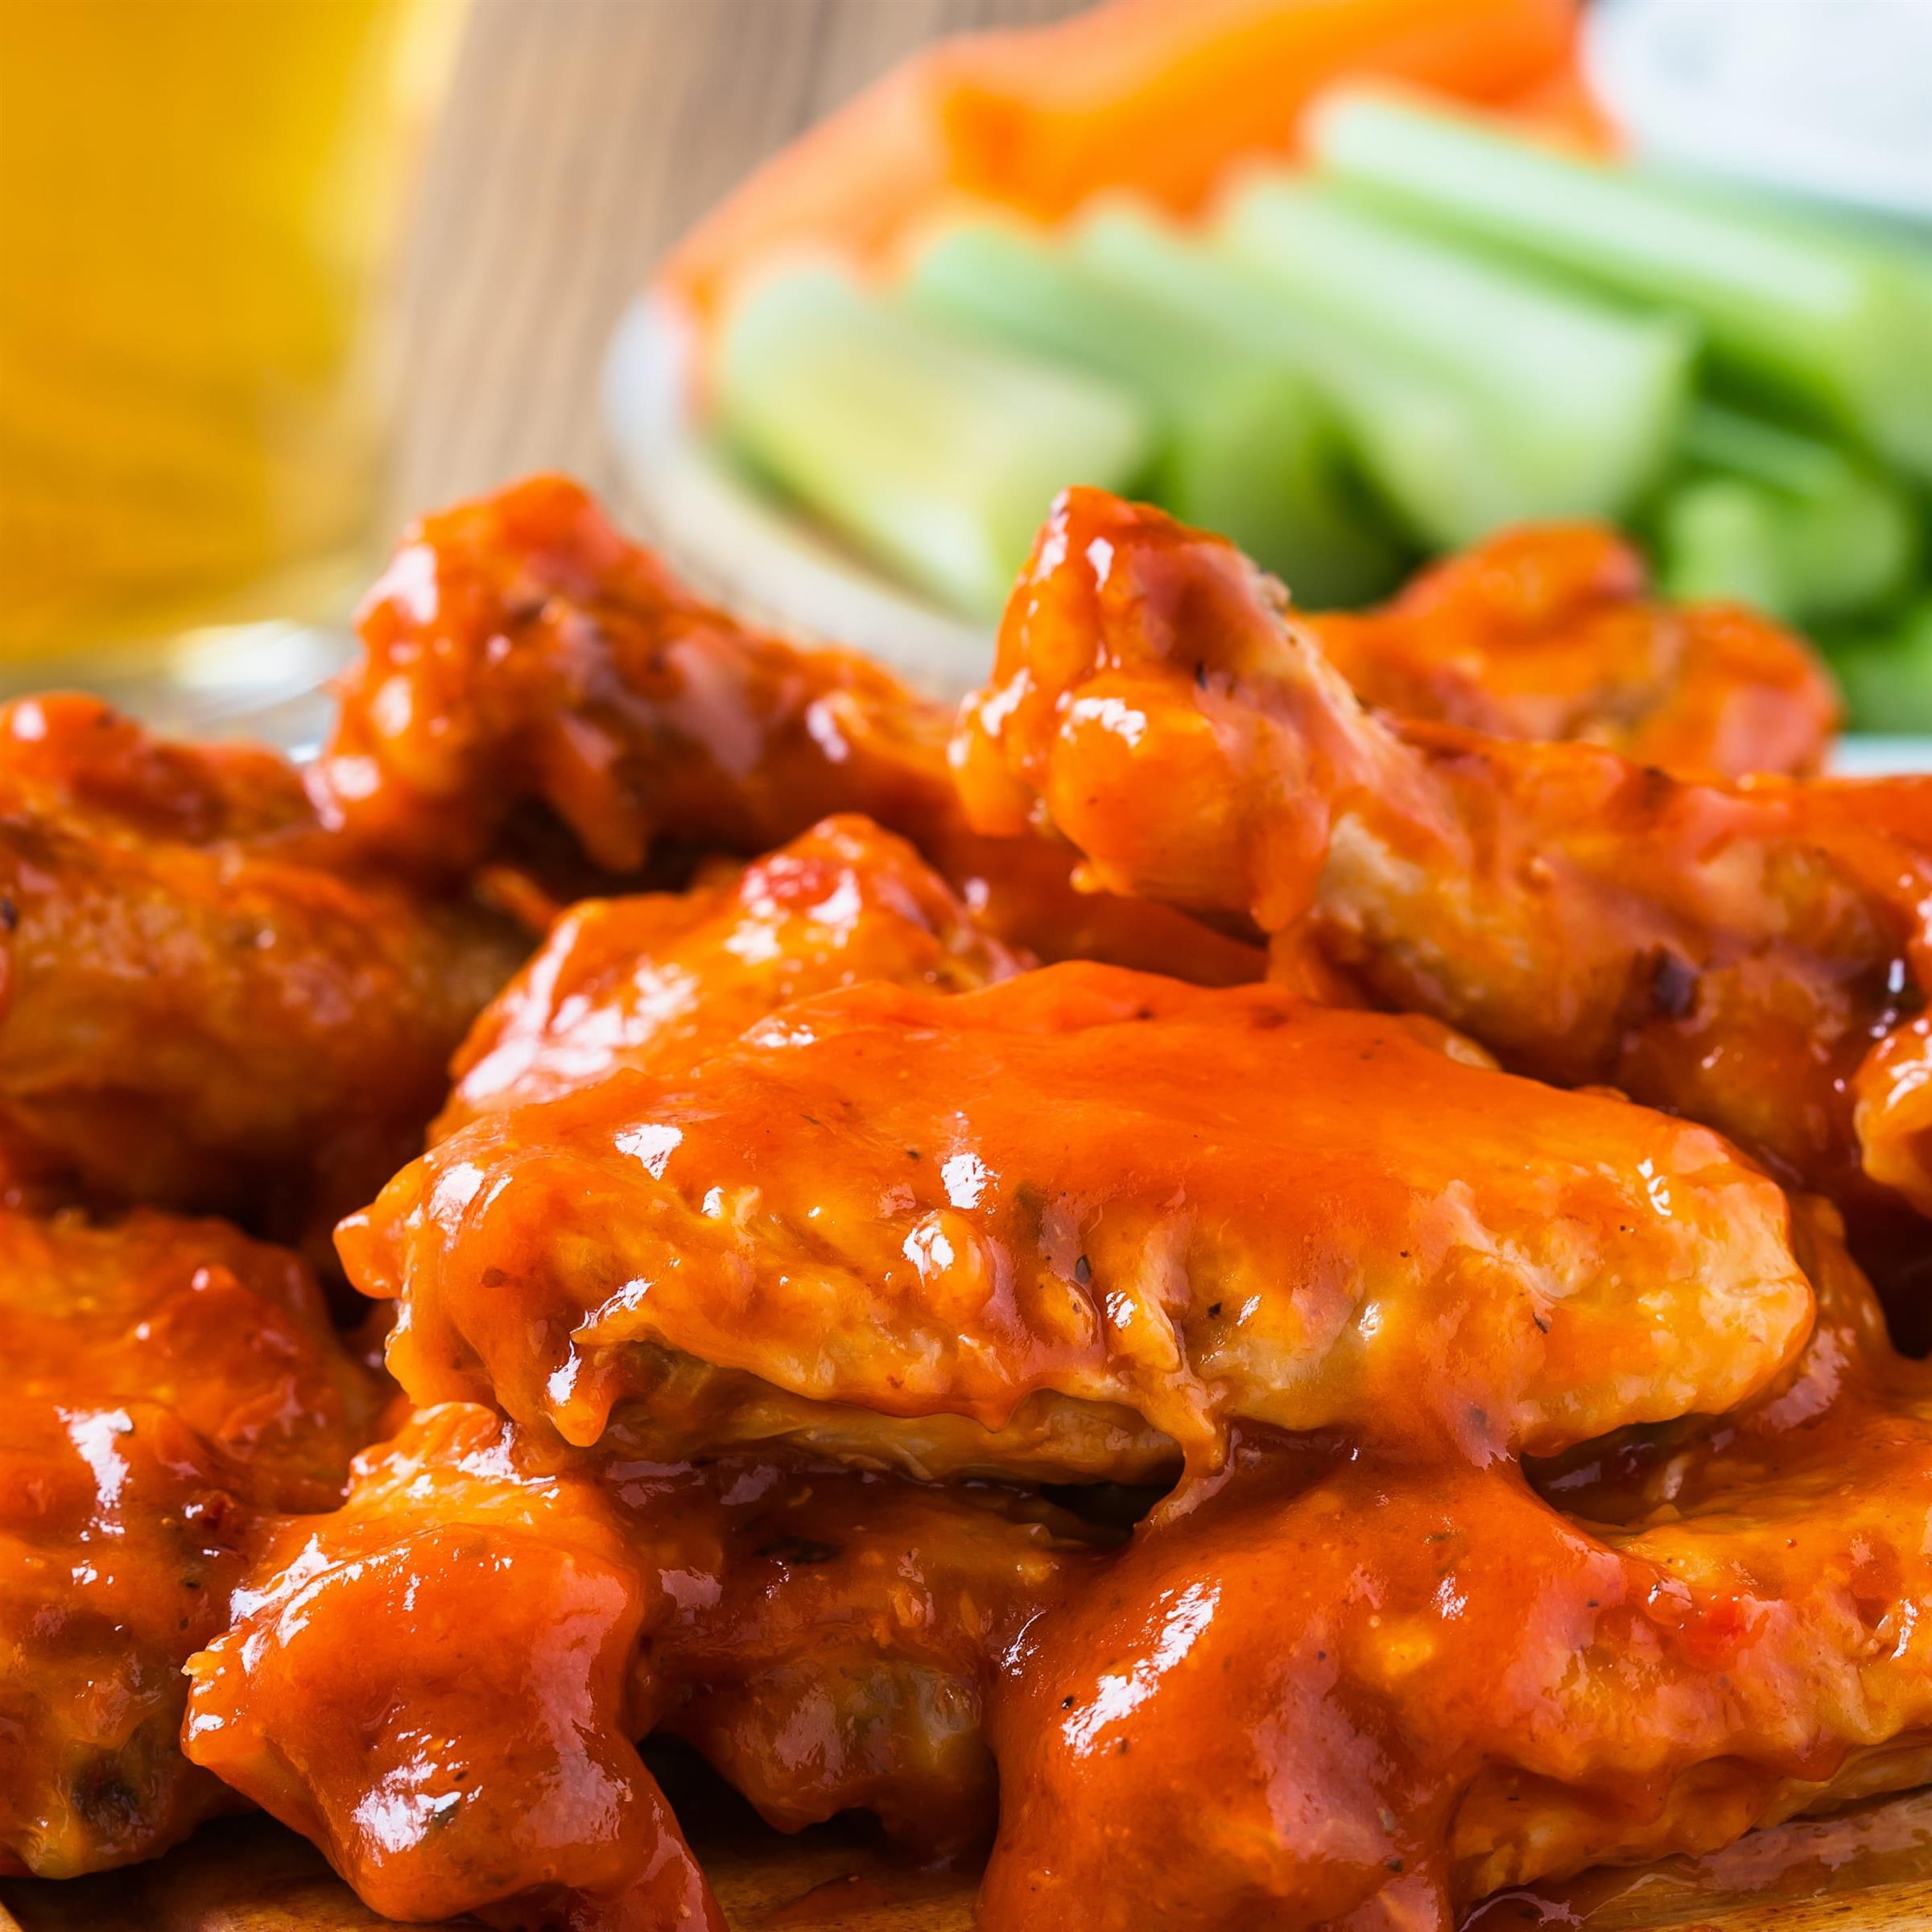 buffalo chicken wings with celery, carrots and blue cheese on the side